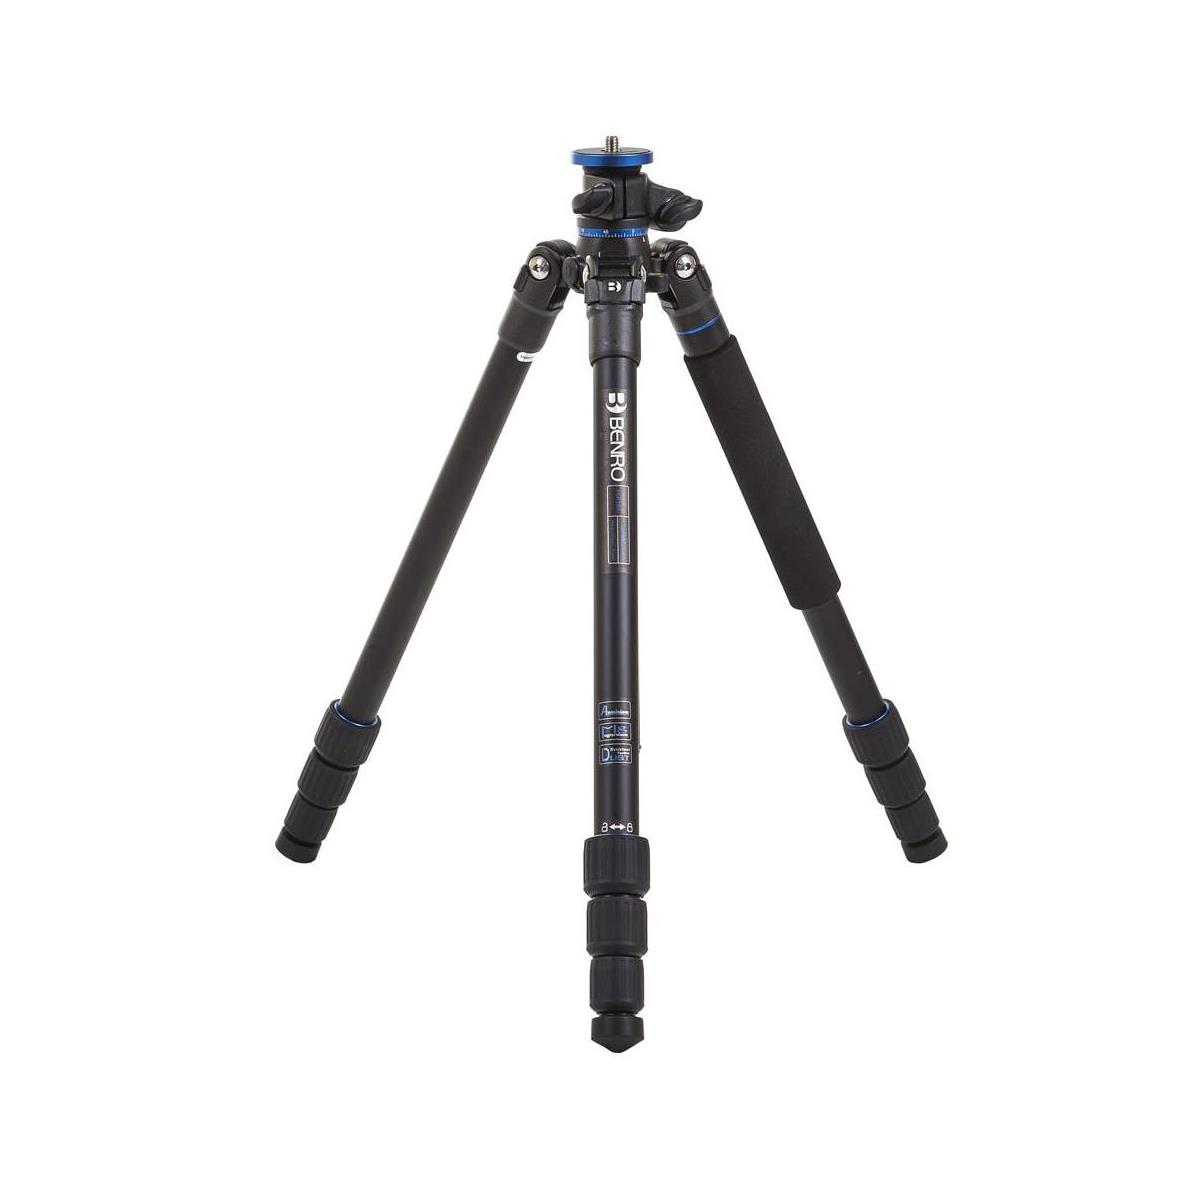 The Benro Go Plus FGP18A 4-Section Aluminum Travel Tripod travel product recommended by Vince Griff on Lifney.